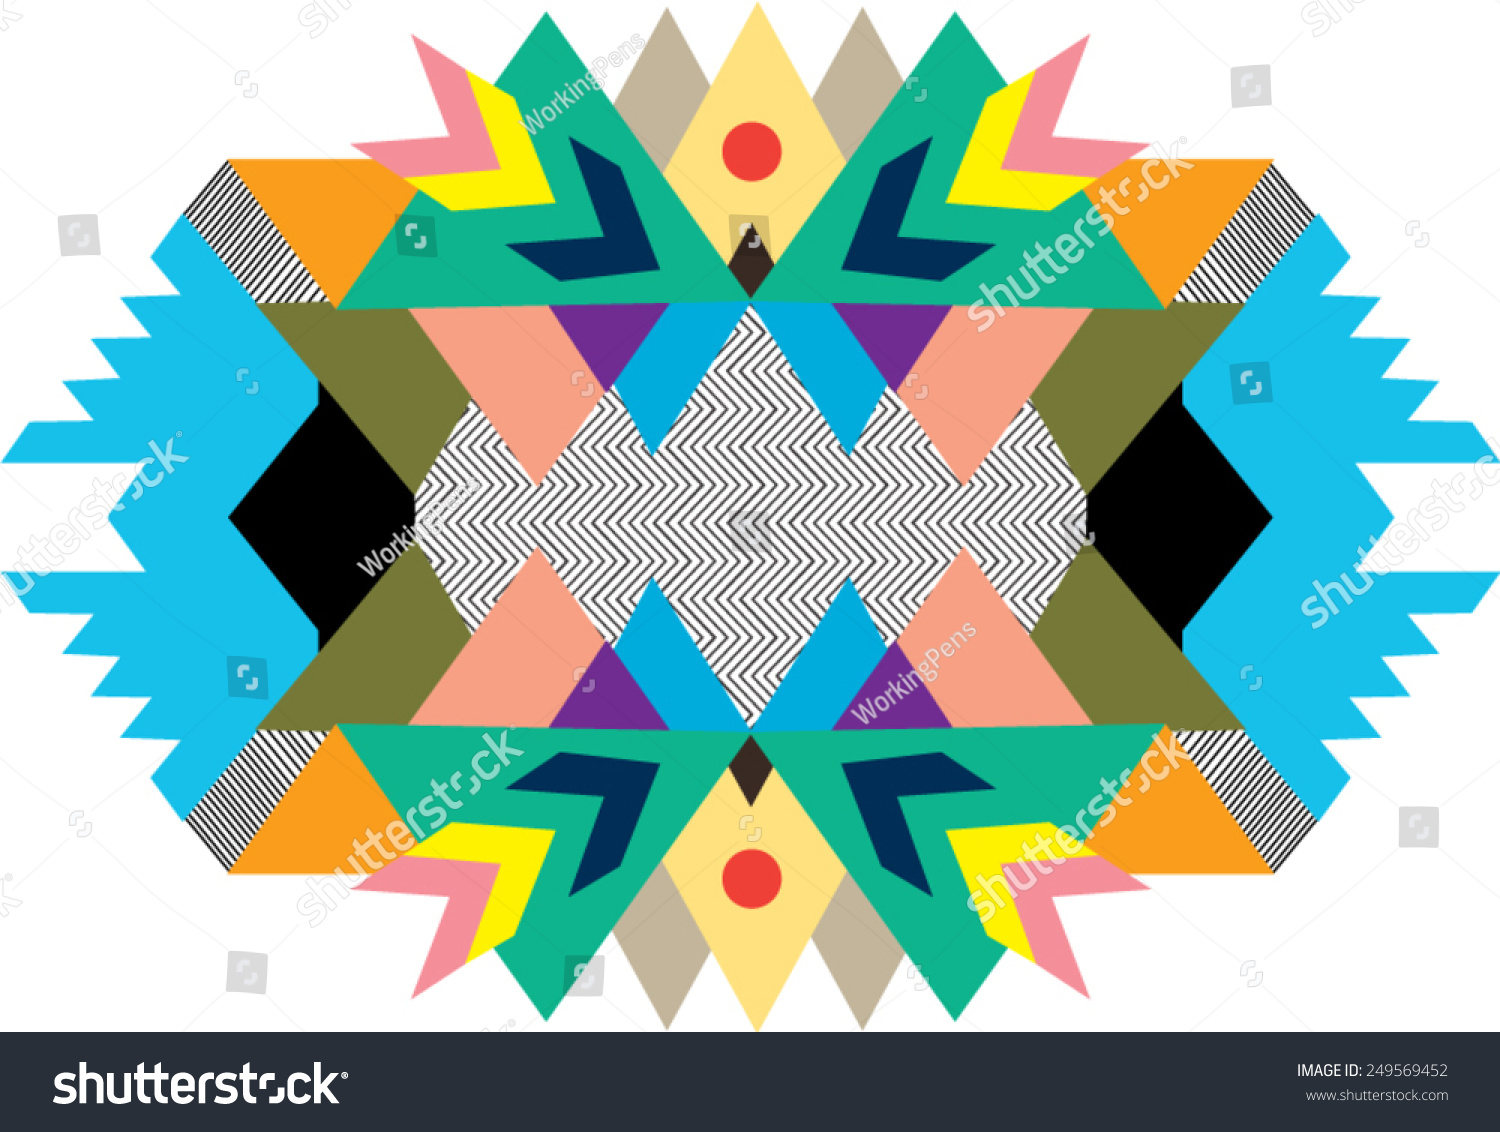 Stock Illustration Volleyball Tribal Abstract Vector: Tribal,Ethnic Print,Abstract And Geometric Stock Vector